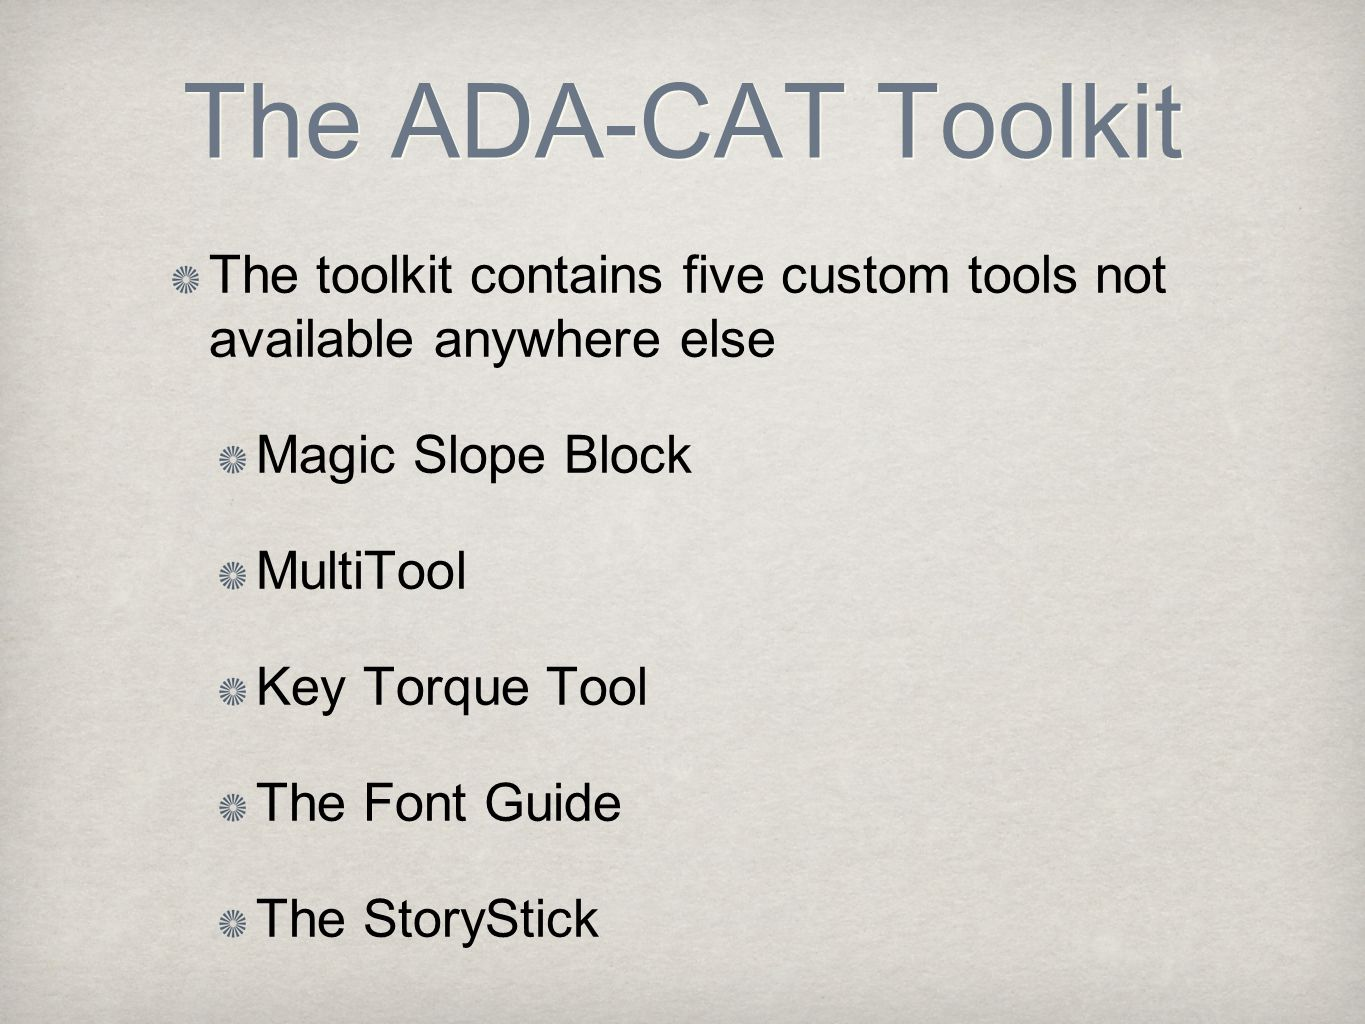 The ADA-CAT Toolkit The toolkit contains five custom tools not available anywhere else Magic Slope Block MultiTool Key Torque Tool The Font Guide The StoryStick